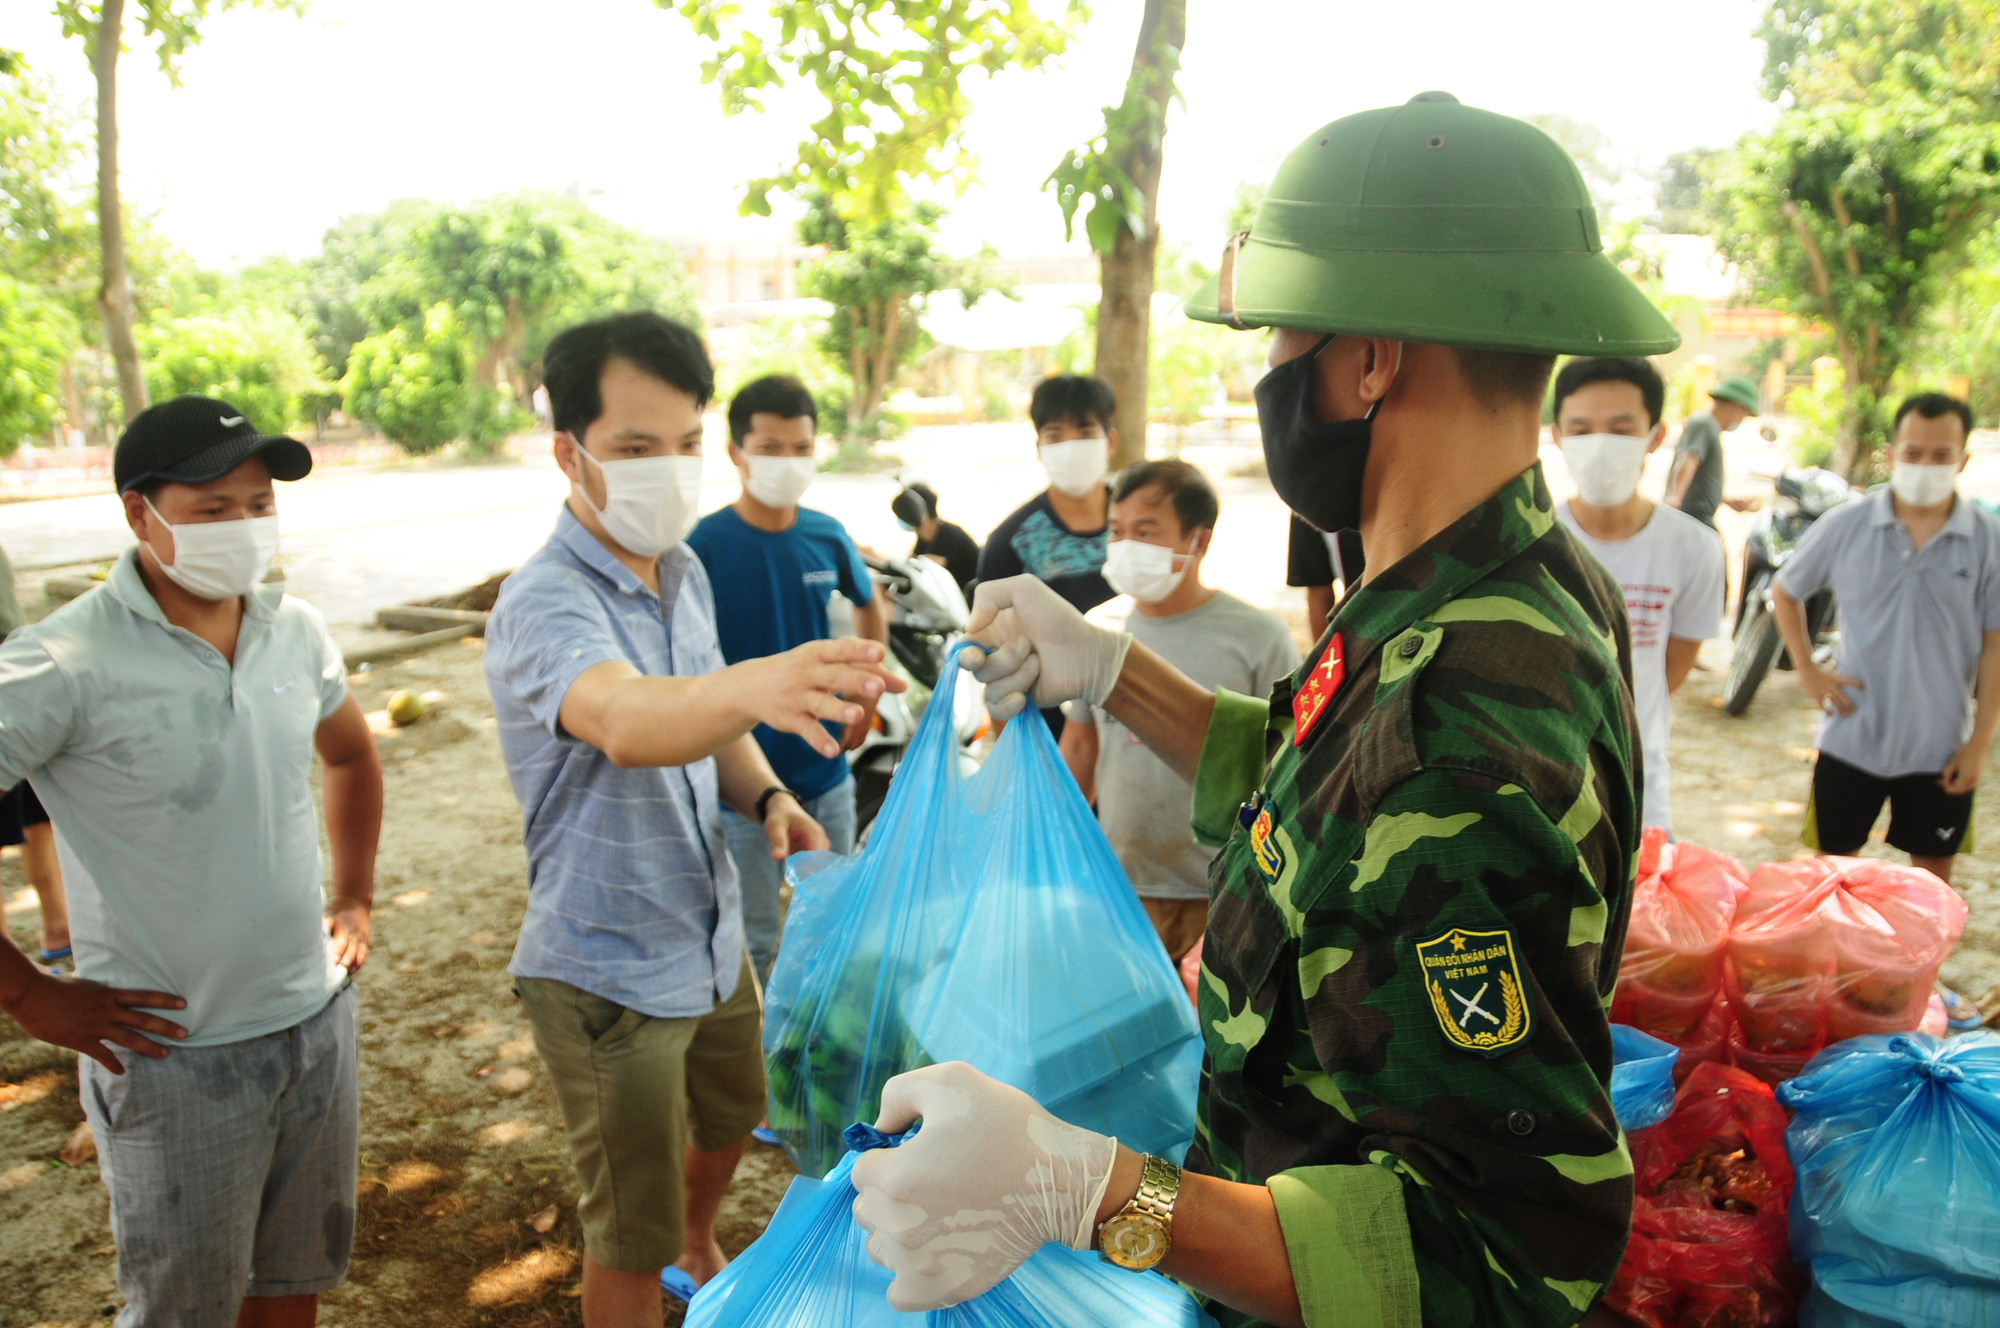 Boxes of steaming rice and food are handed to quarantined people at Hanoi Capital High Command's Military School in Hanoi, Vietnam. Photo: Nguyen Khanh / Tuoi Tre